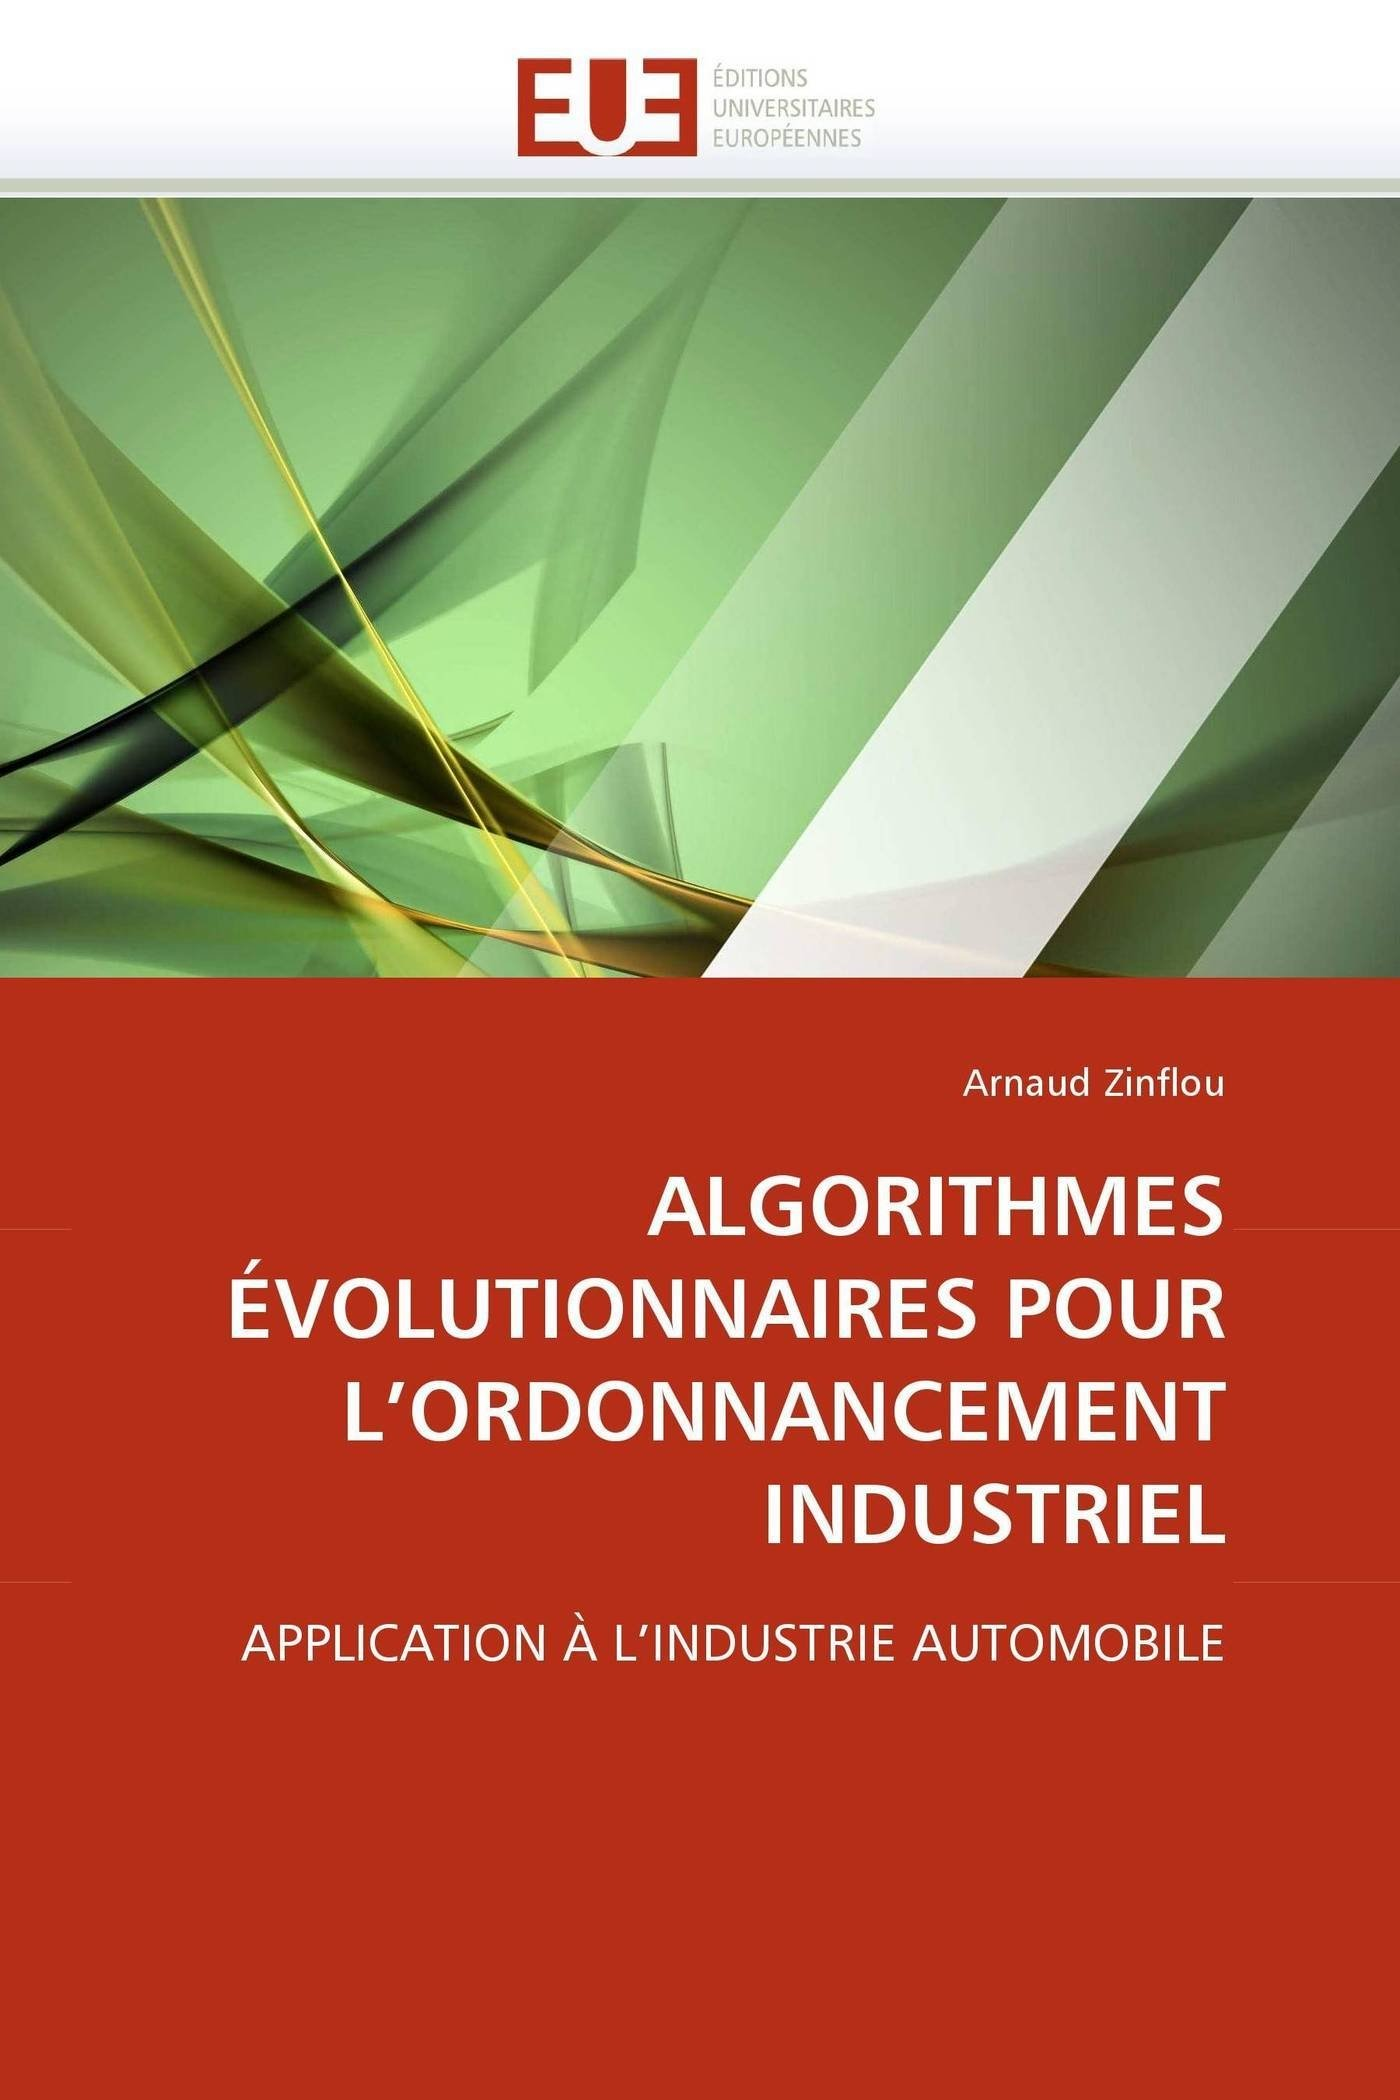 Read Online ALGORITHMES ÉVOLUTIONNAIRES POUR L'ORDONNANCEMENT INDUSTRIEL: APPLICATION À L'INDUSTRIE AUTOMOBILE (Omn.Univ.Europ.) (French Edition) pdf epub